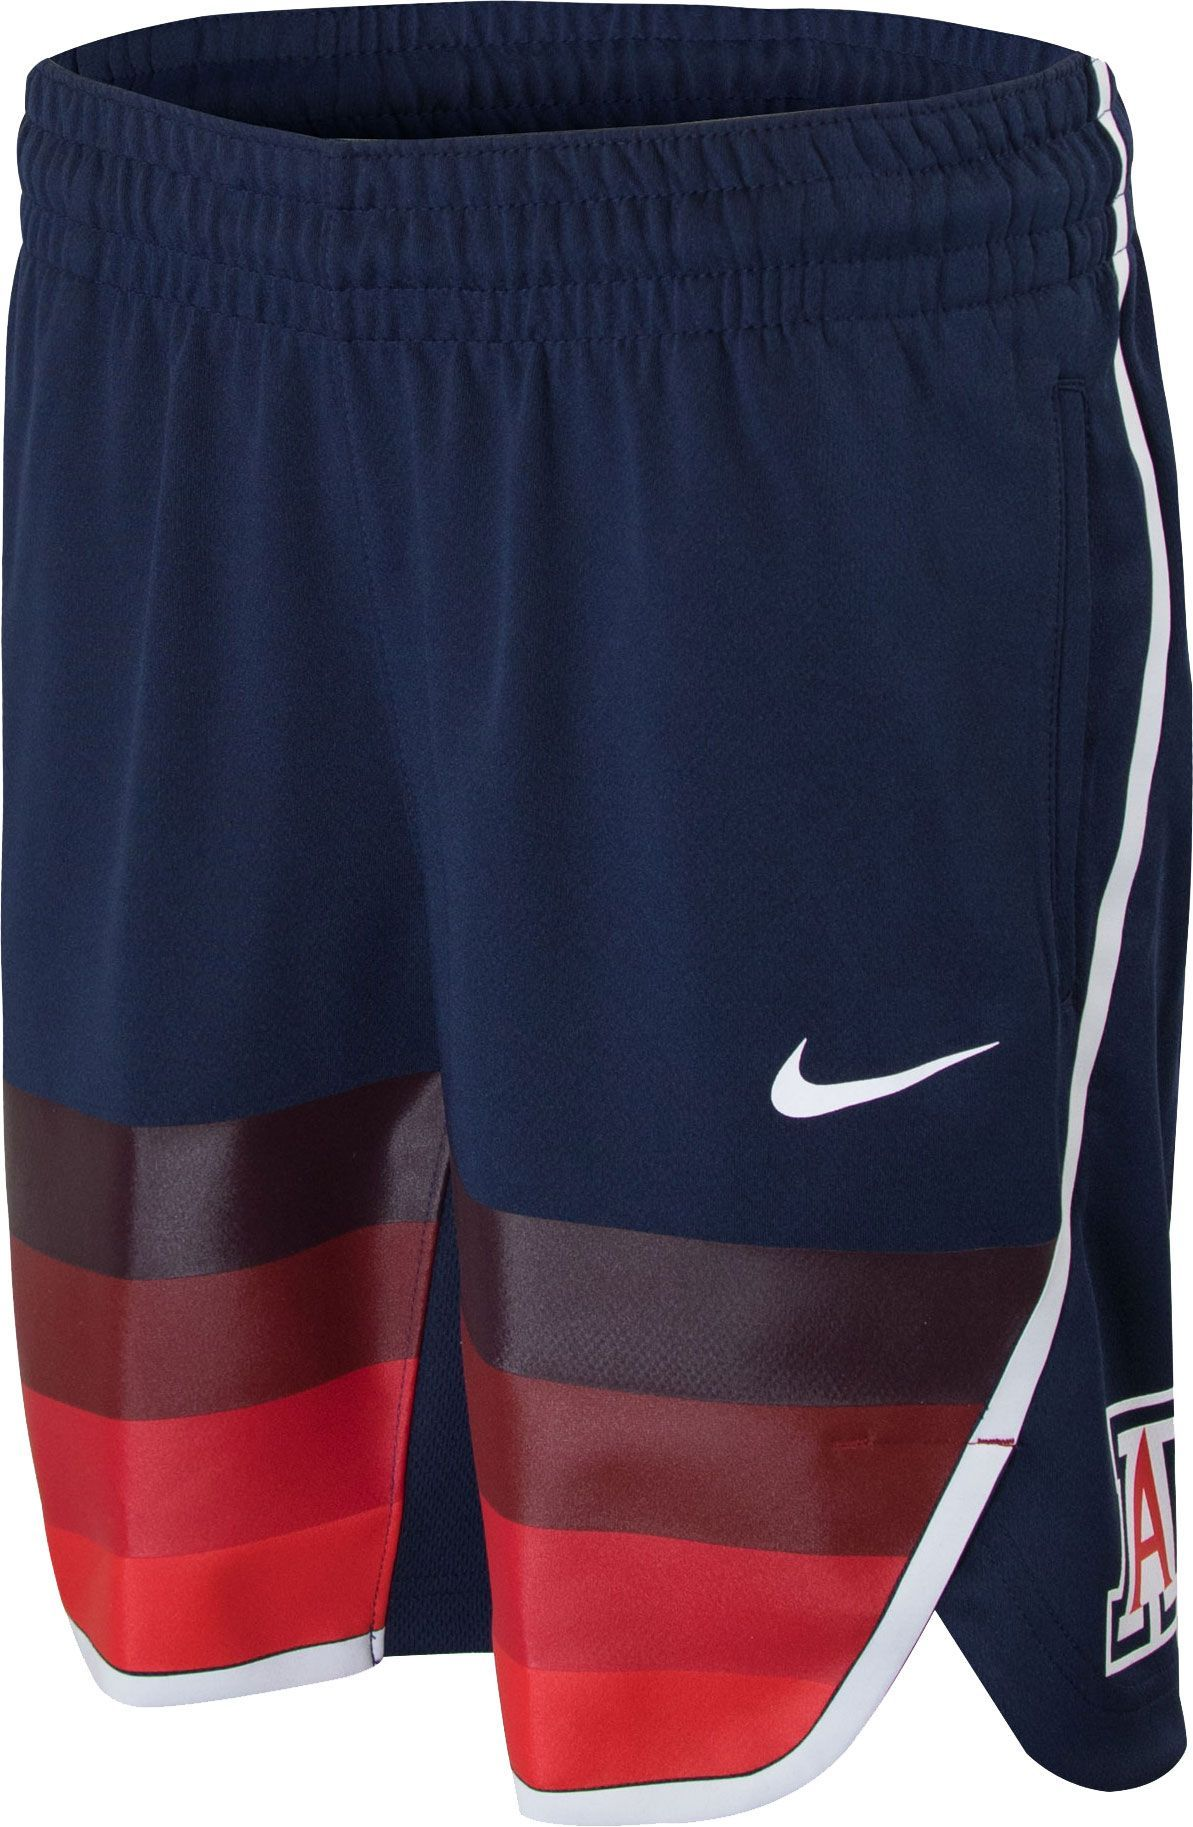 67eaf30d0d8 Nike Youth Arizona Wildcats Navy Replica Basketball Shorts, Blue